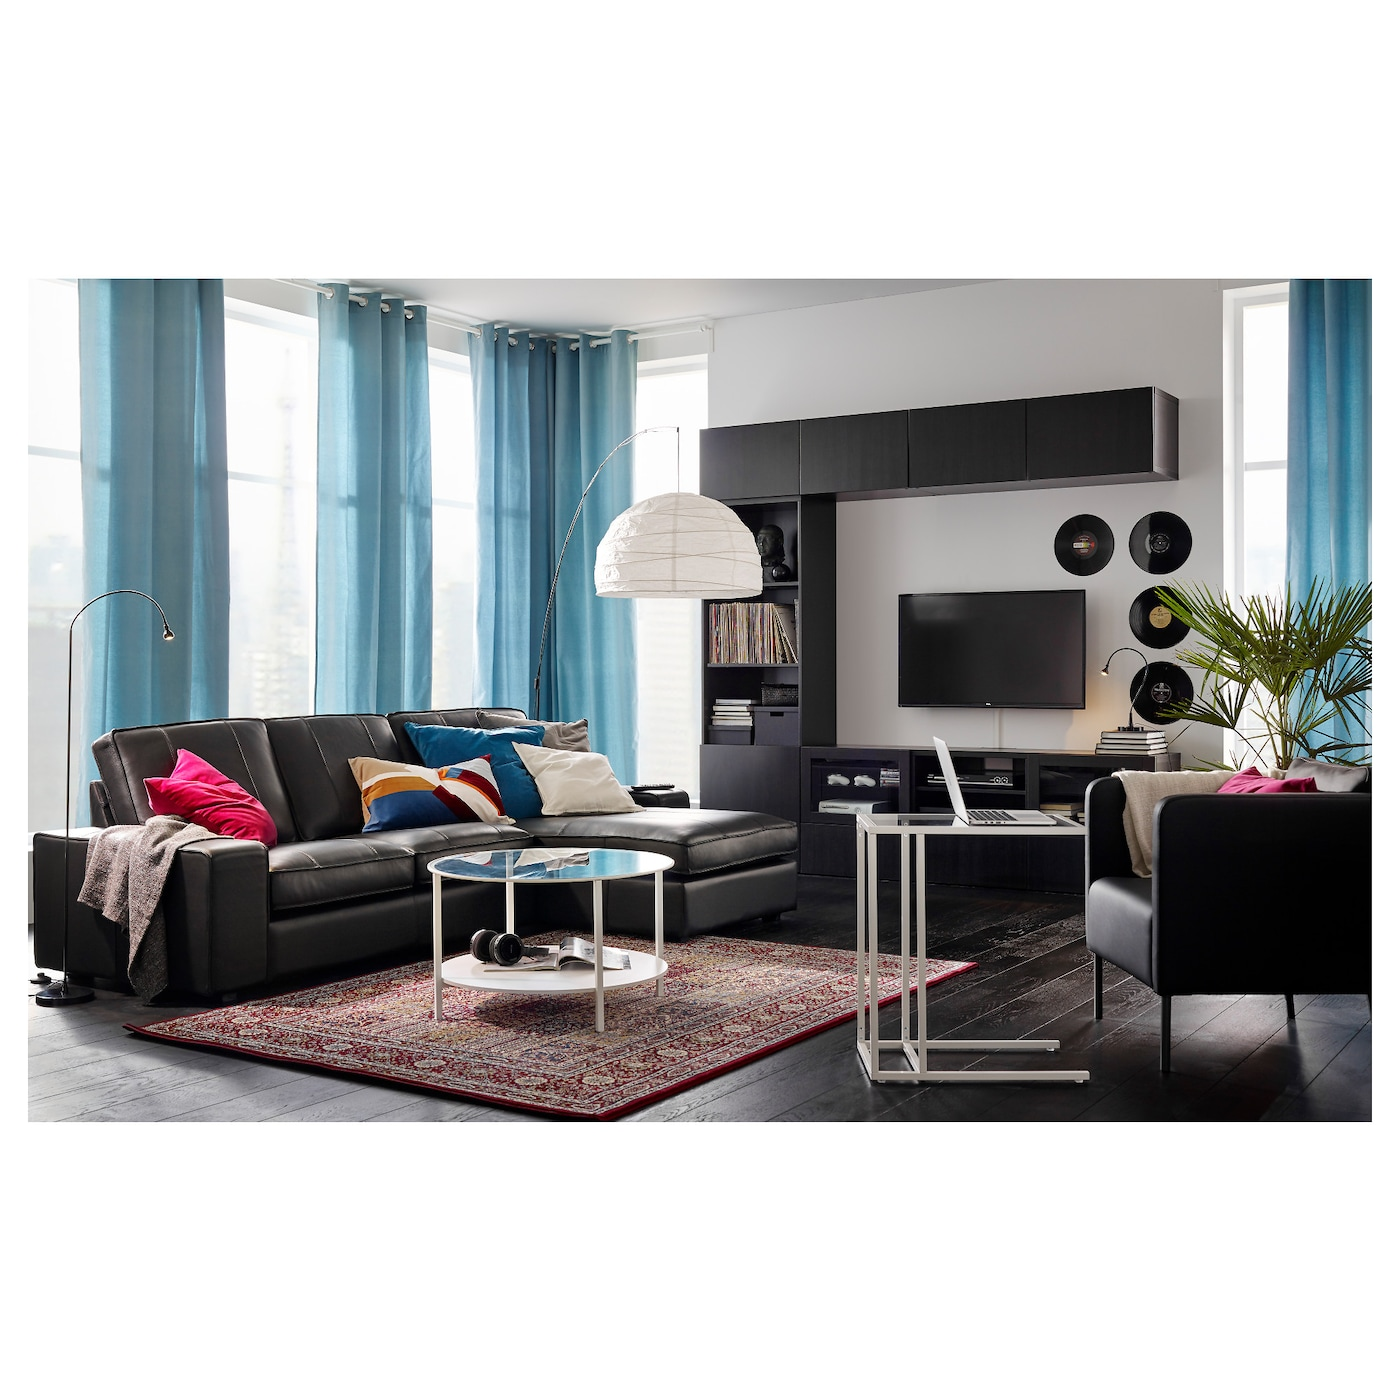 regolit lampadaire arceau blanc noir ikea. Black Bedroom Furniture Sets. Home Design Ideas